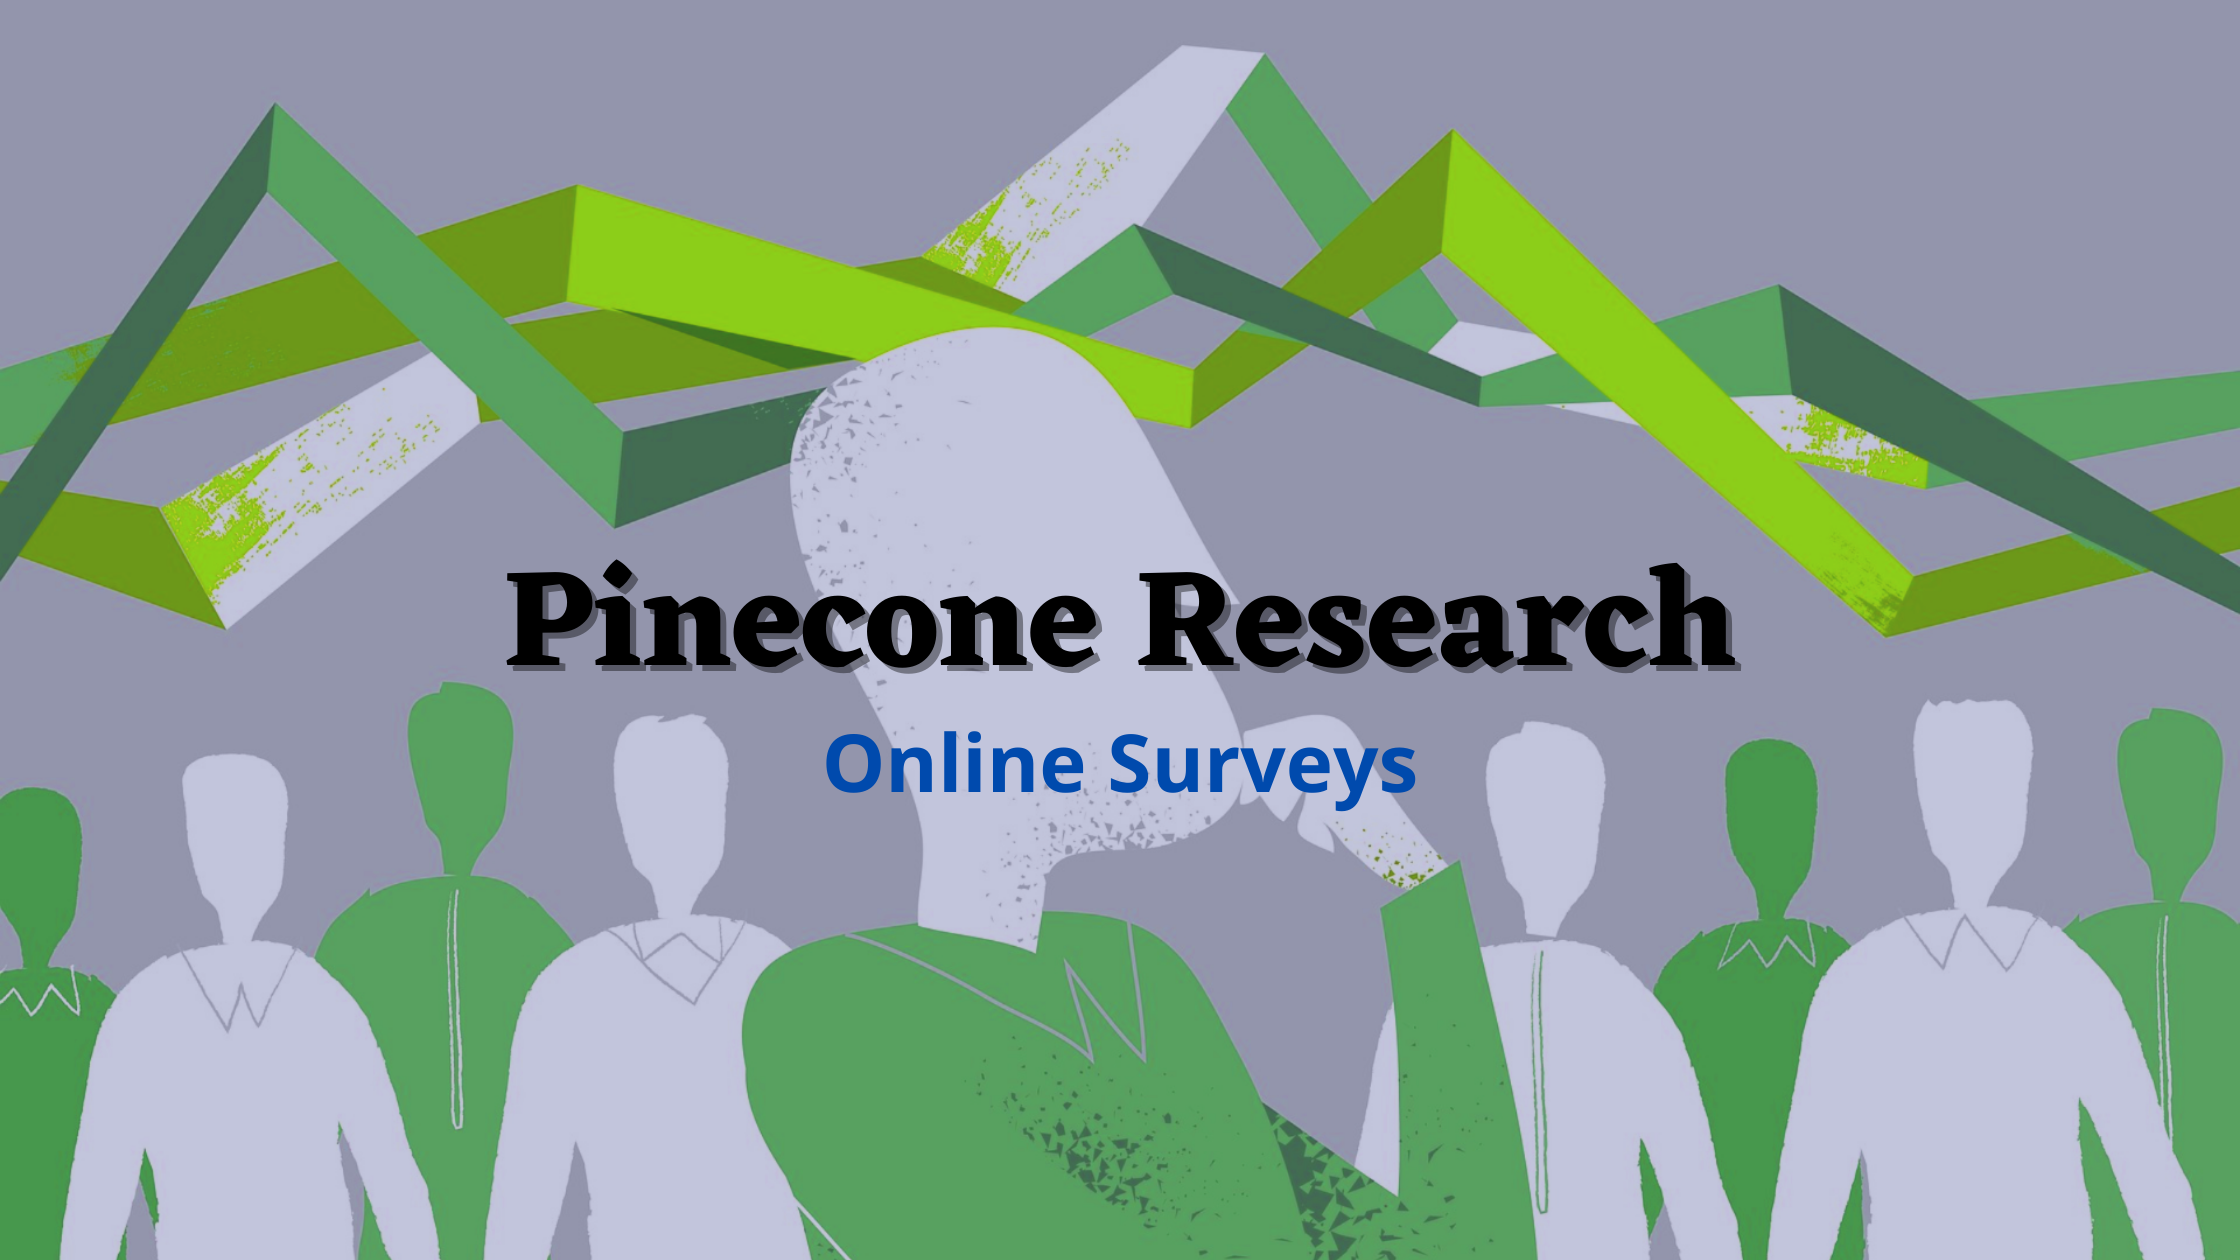 Is Pinecone Research worth it